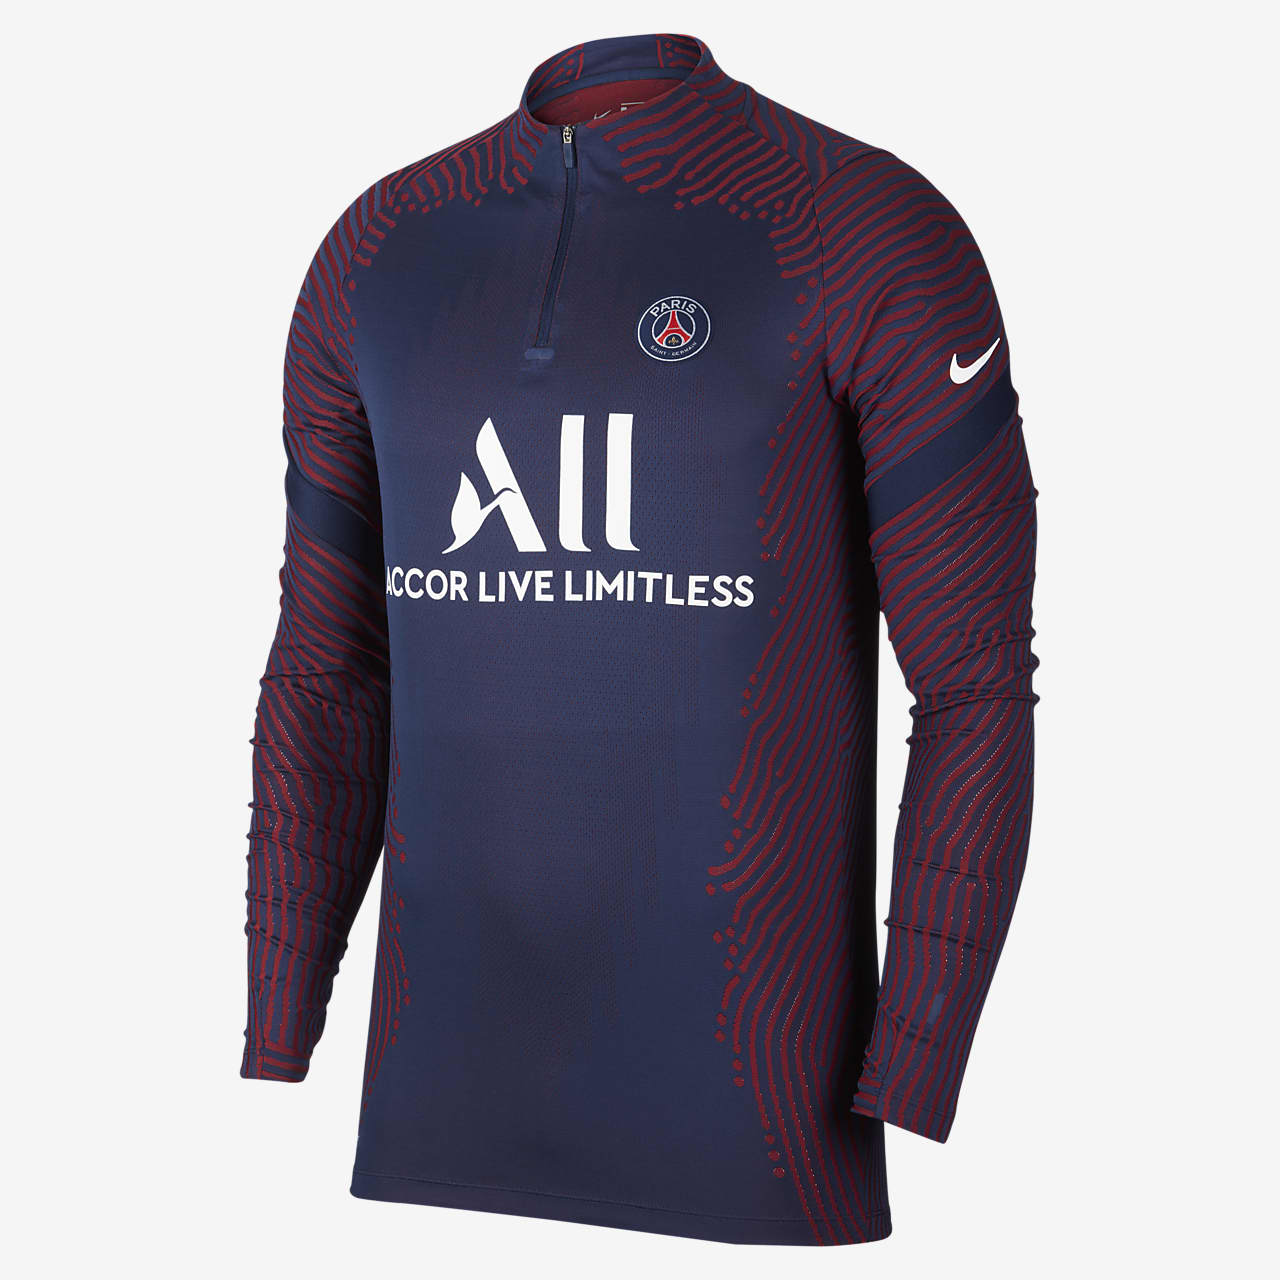 Haut de football Paris Saint-Germain VaporKnit Strike pour Homme